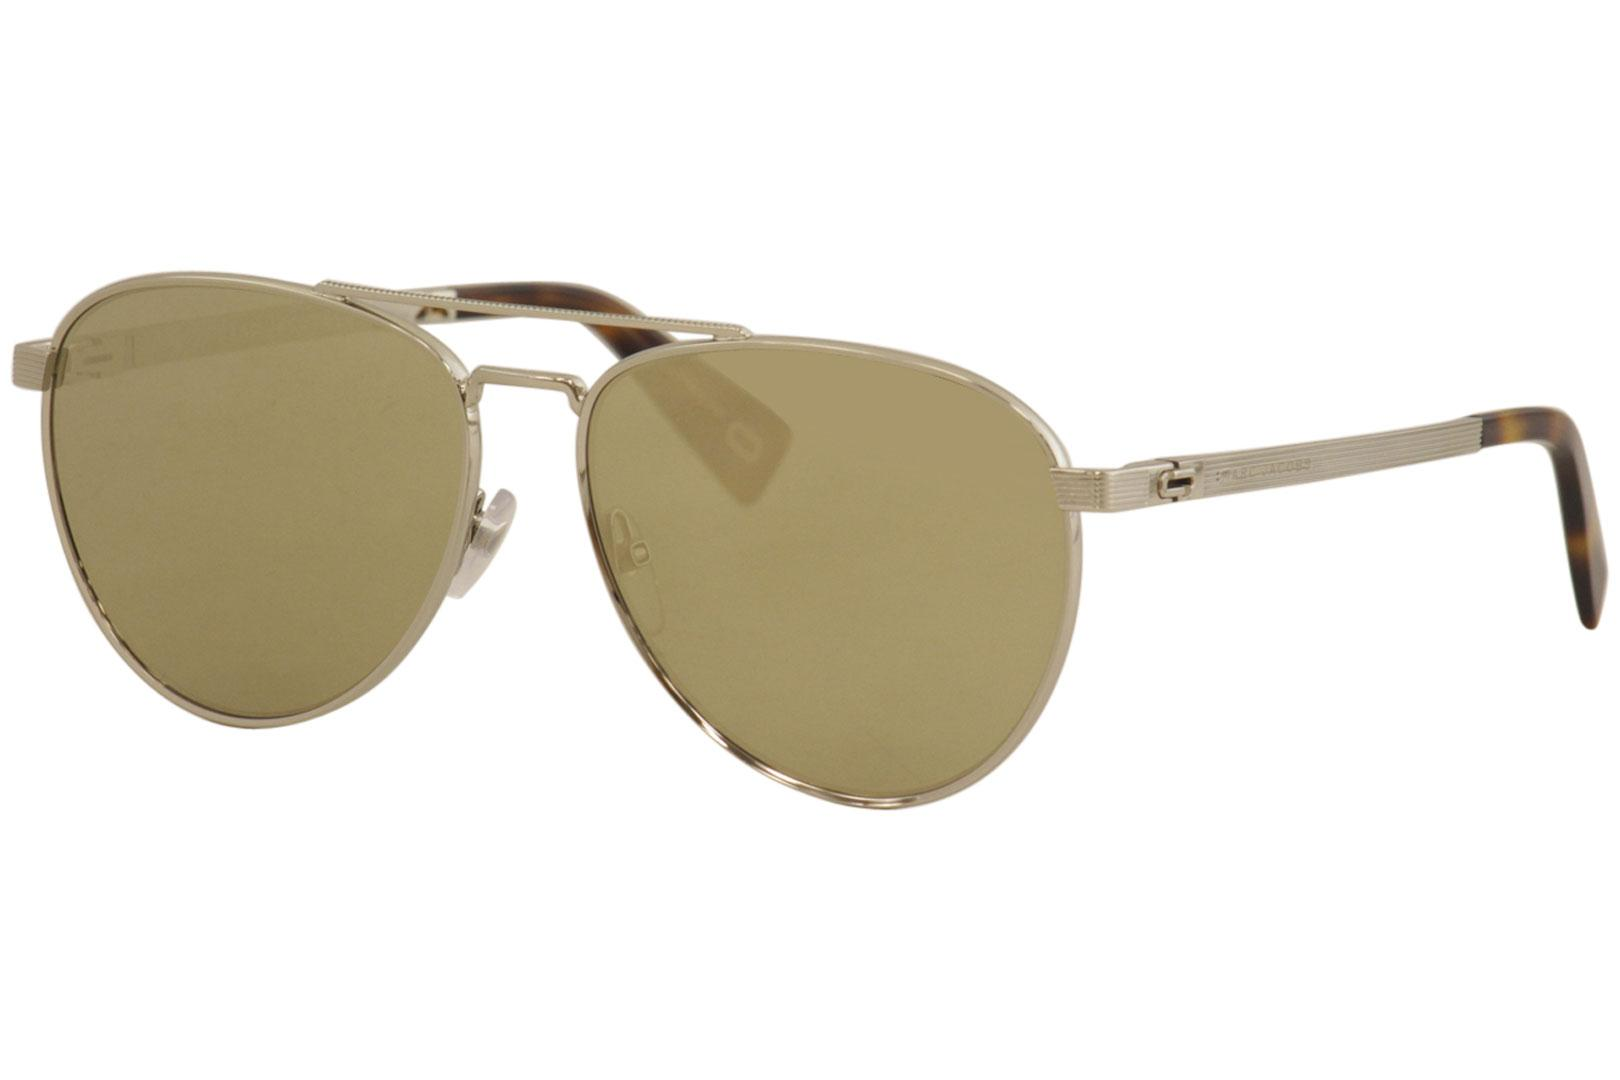 52ef032ab998 ... 240/S Fashion Pilot Sunglasses by Marc Jacobs. Touch to zoom